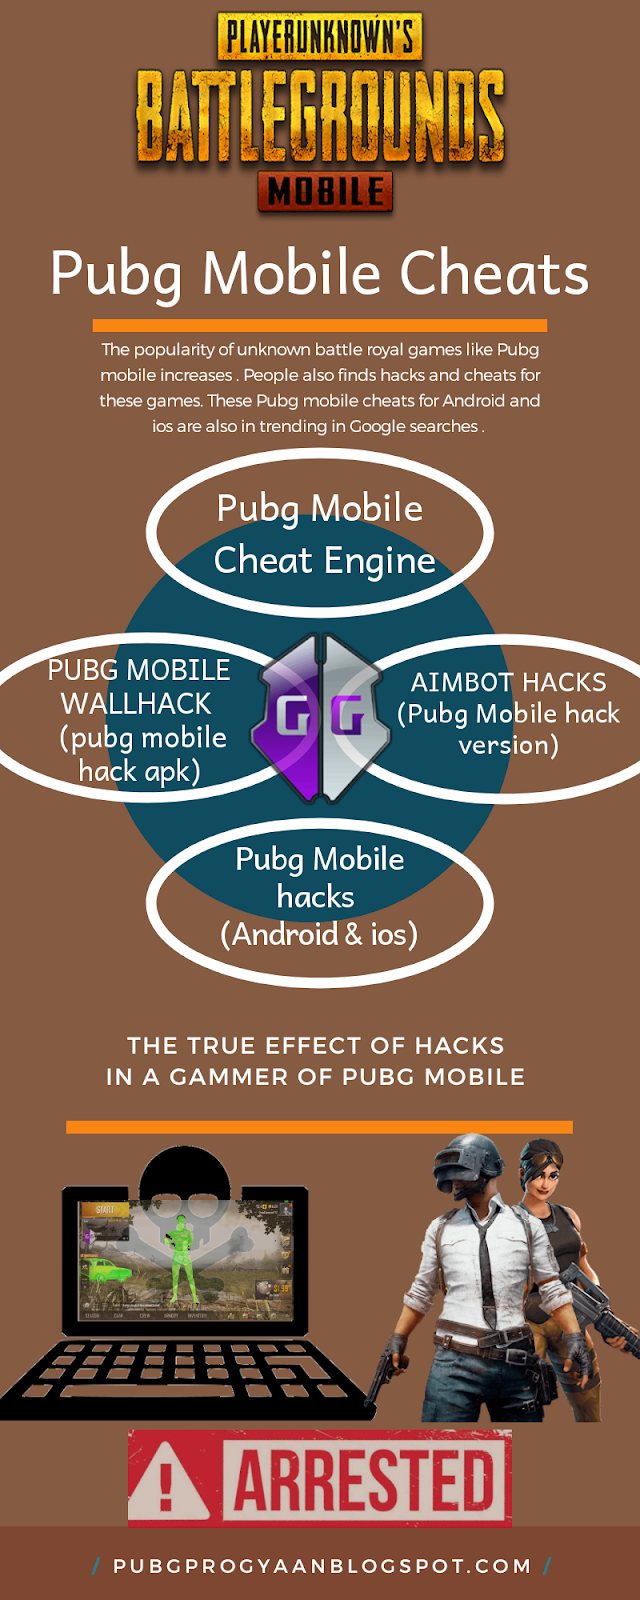 Pubg mobile cheats [Secret Reveal]